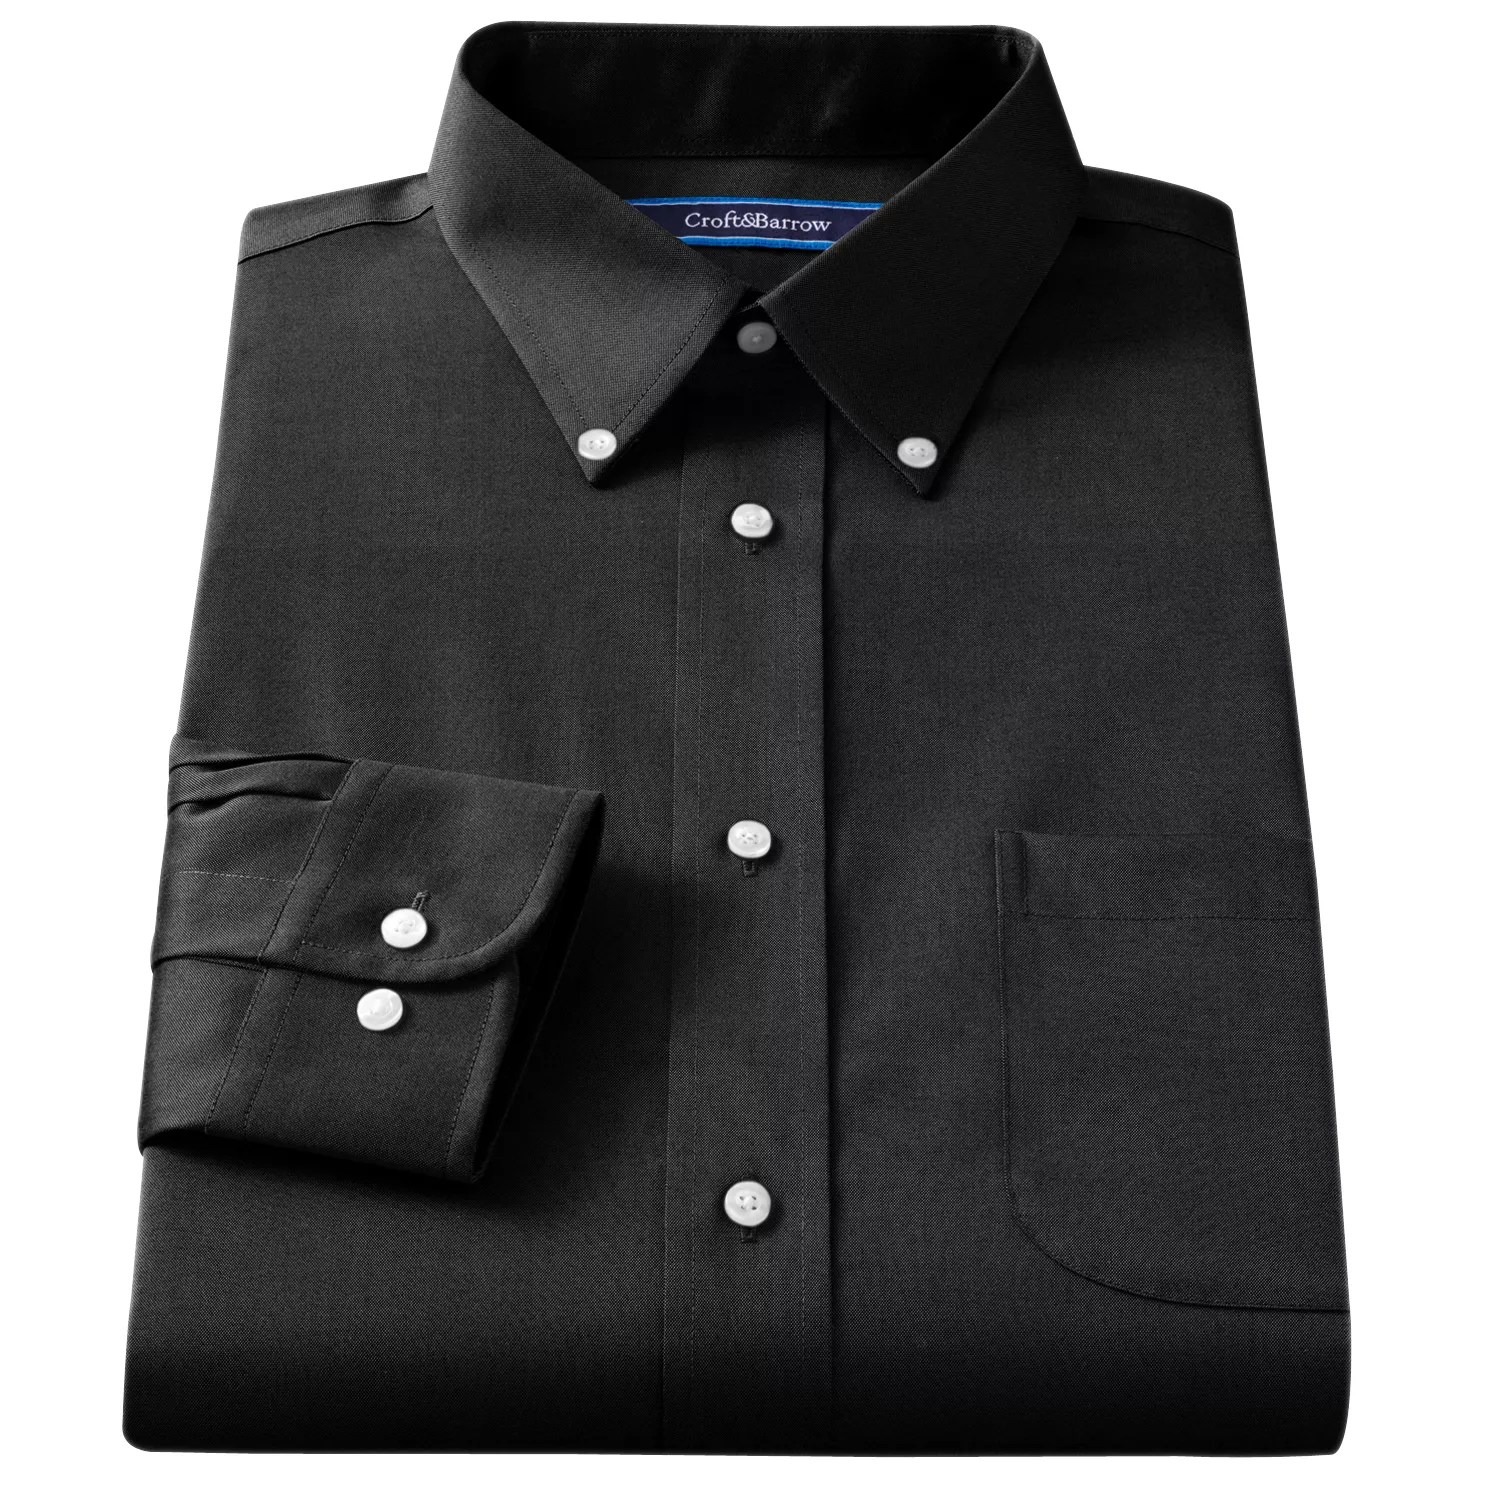 Croft & Barrow Fitted Solid Broadcloth Button- Collar